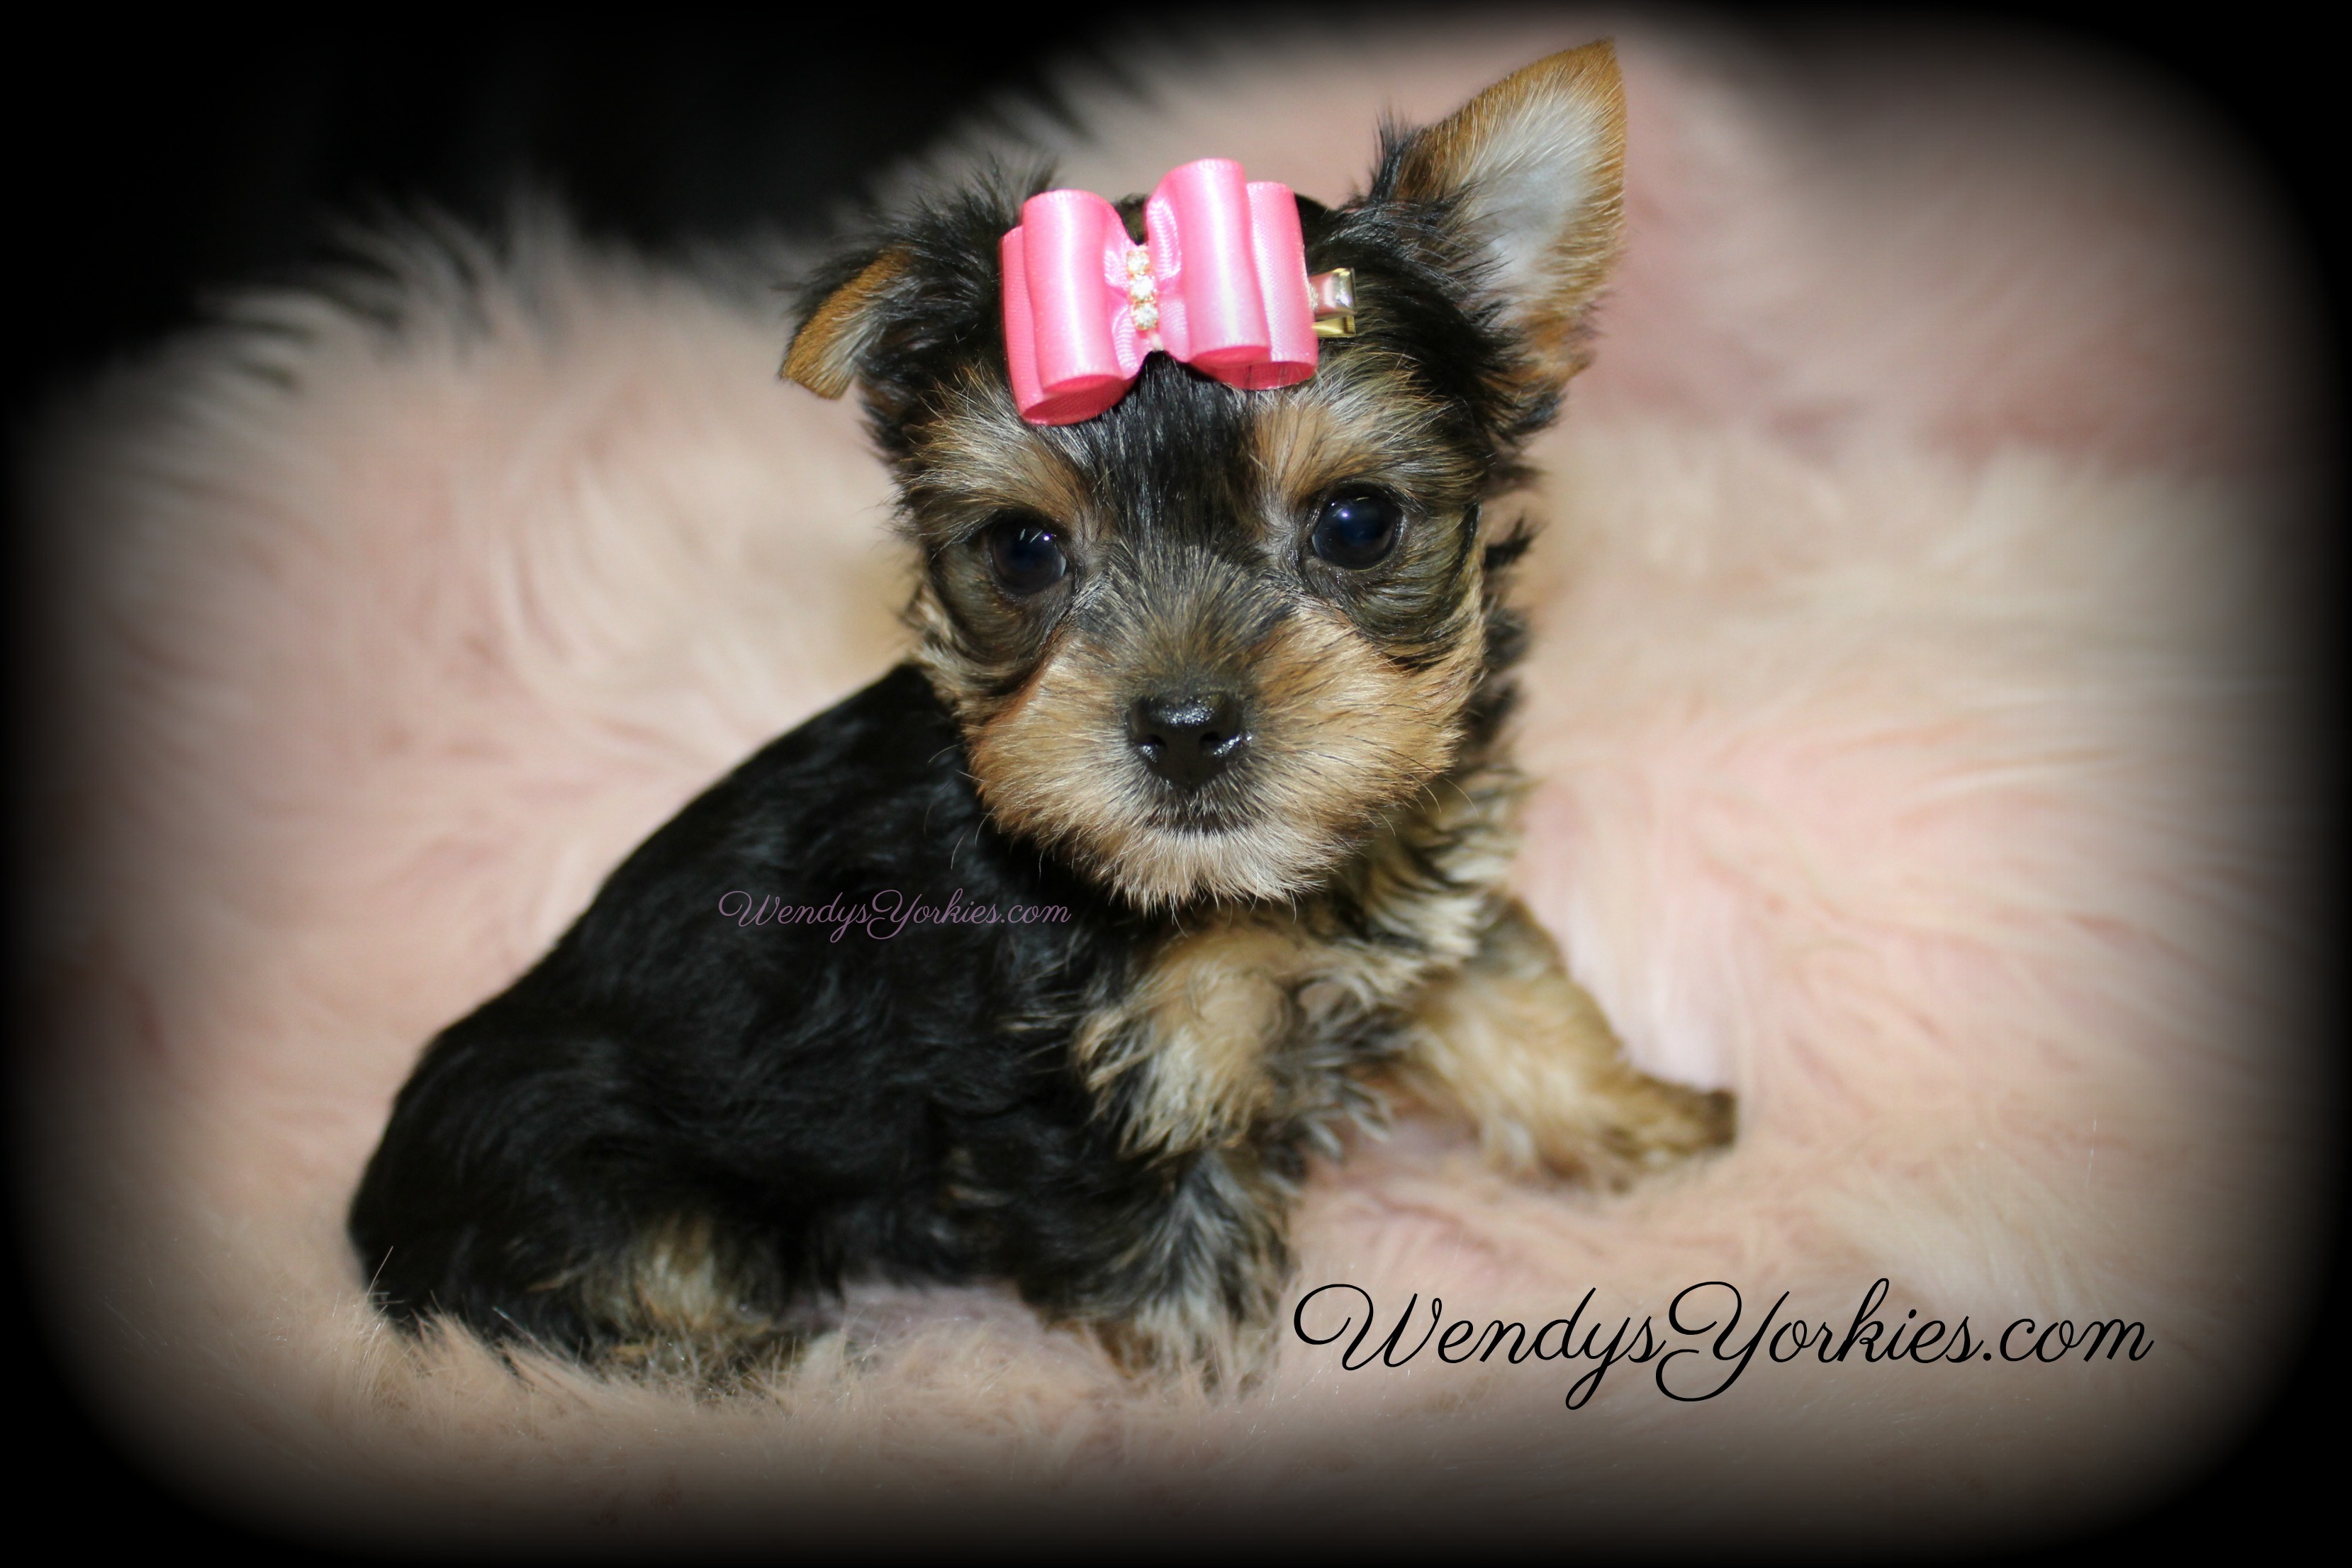 Teacup Yorkie puppy for sale, WendysYorkies.com, Loulou f3